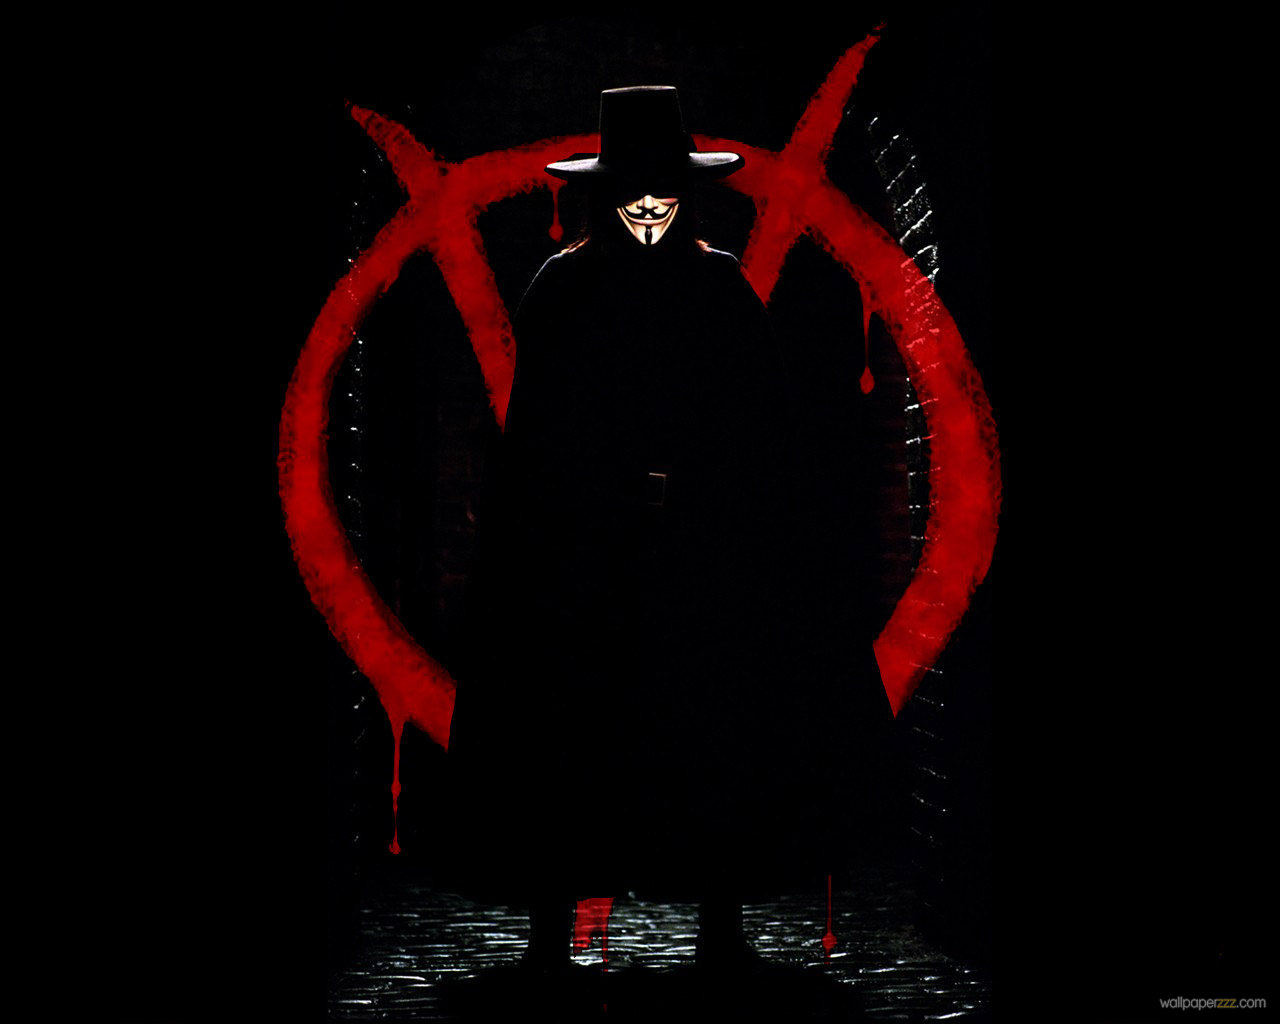 For Vendetta 26339 Hd Wallpapers in Movies   Imagescicom 1280x1024